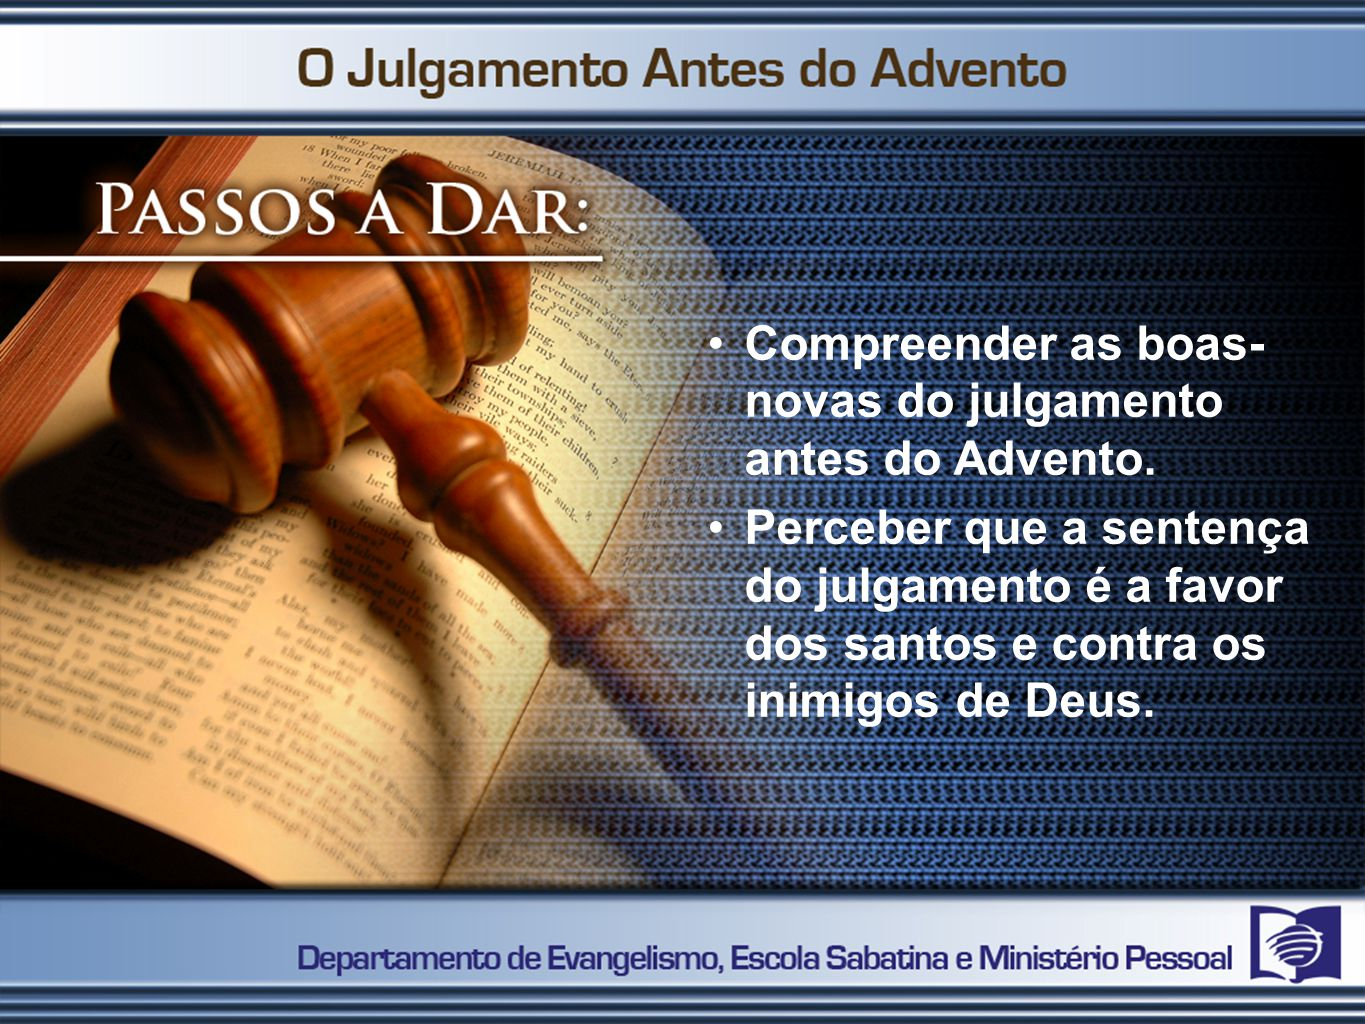 Compreender as boas- novas do julgamento antes do Advento.